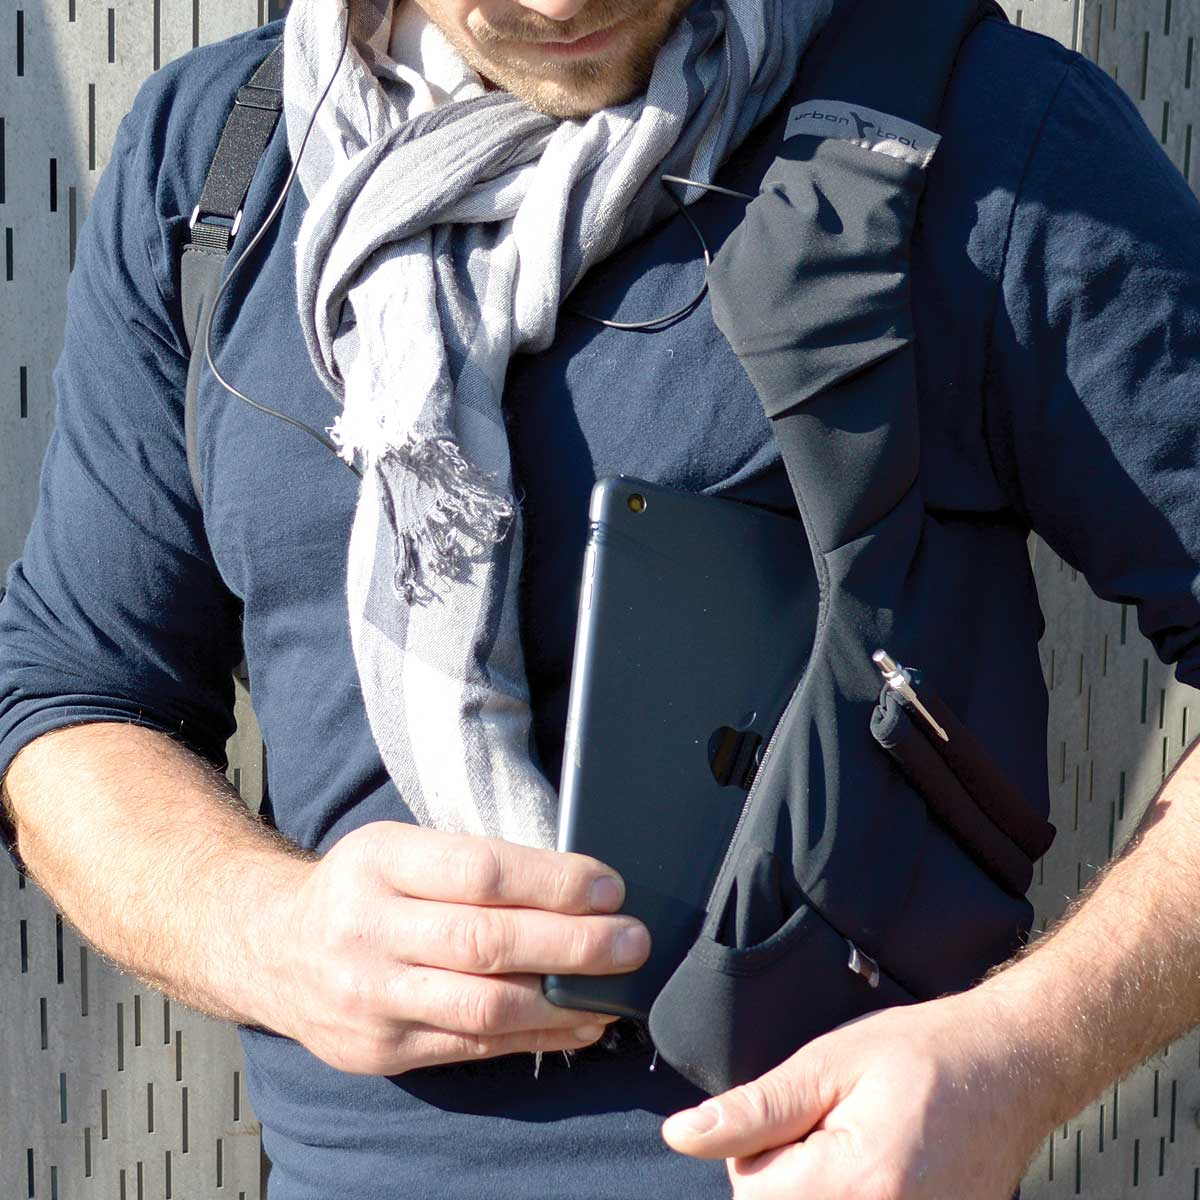 dbe05565b874 Tablet shoulder holster fits 7-8